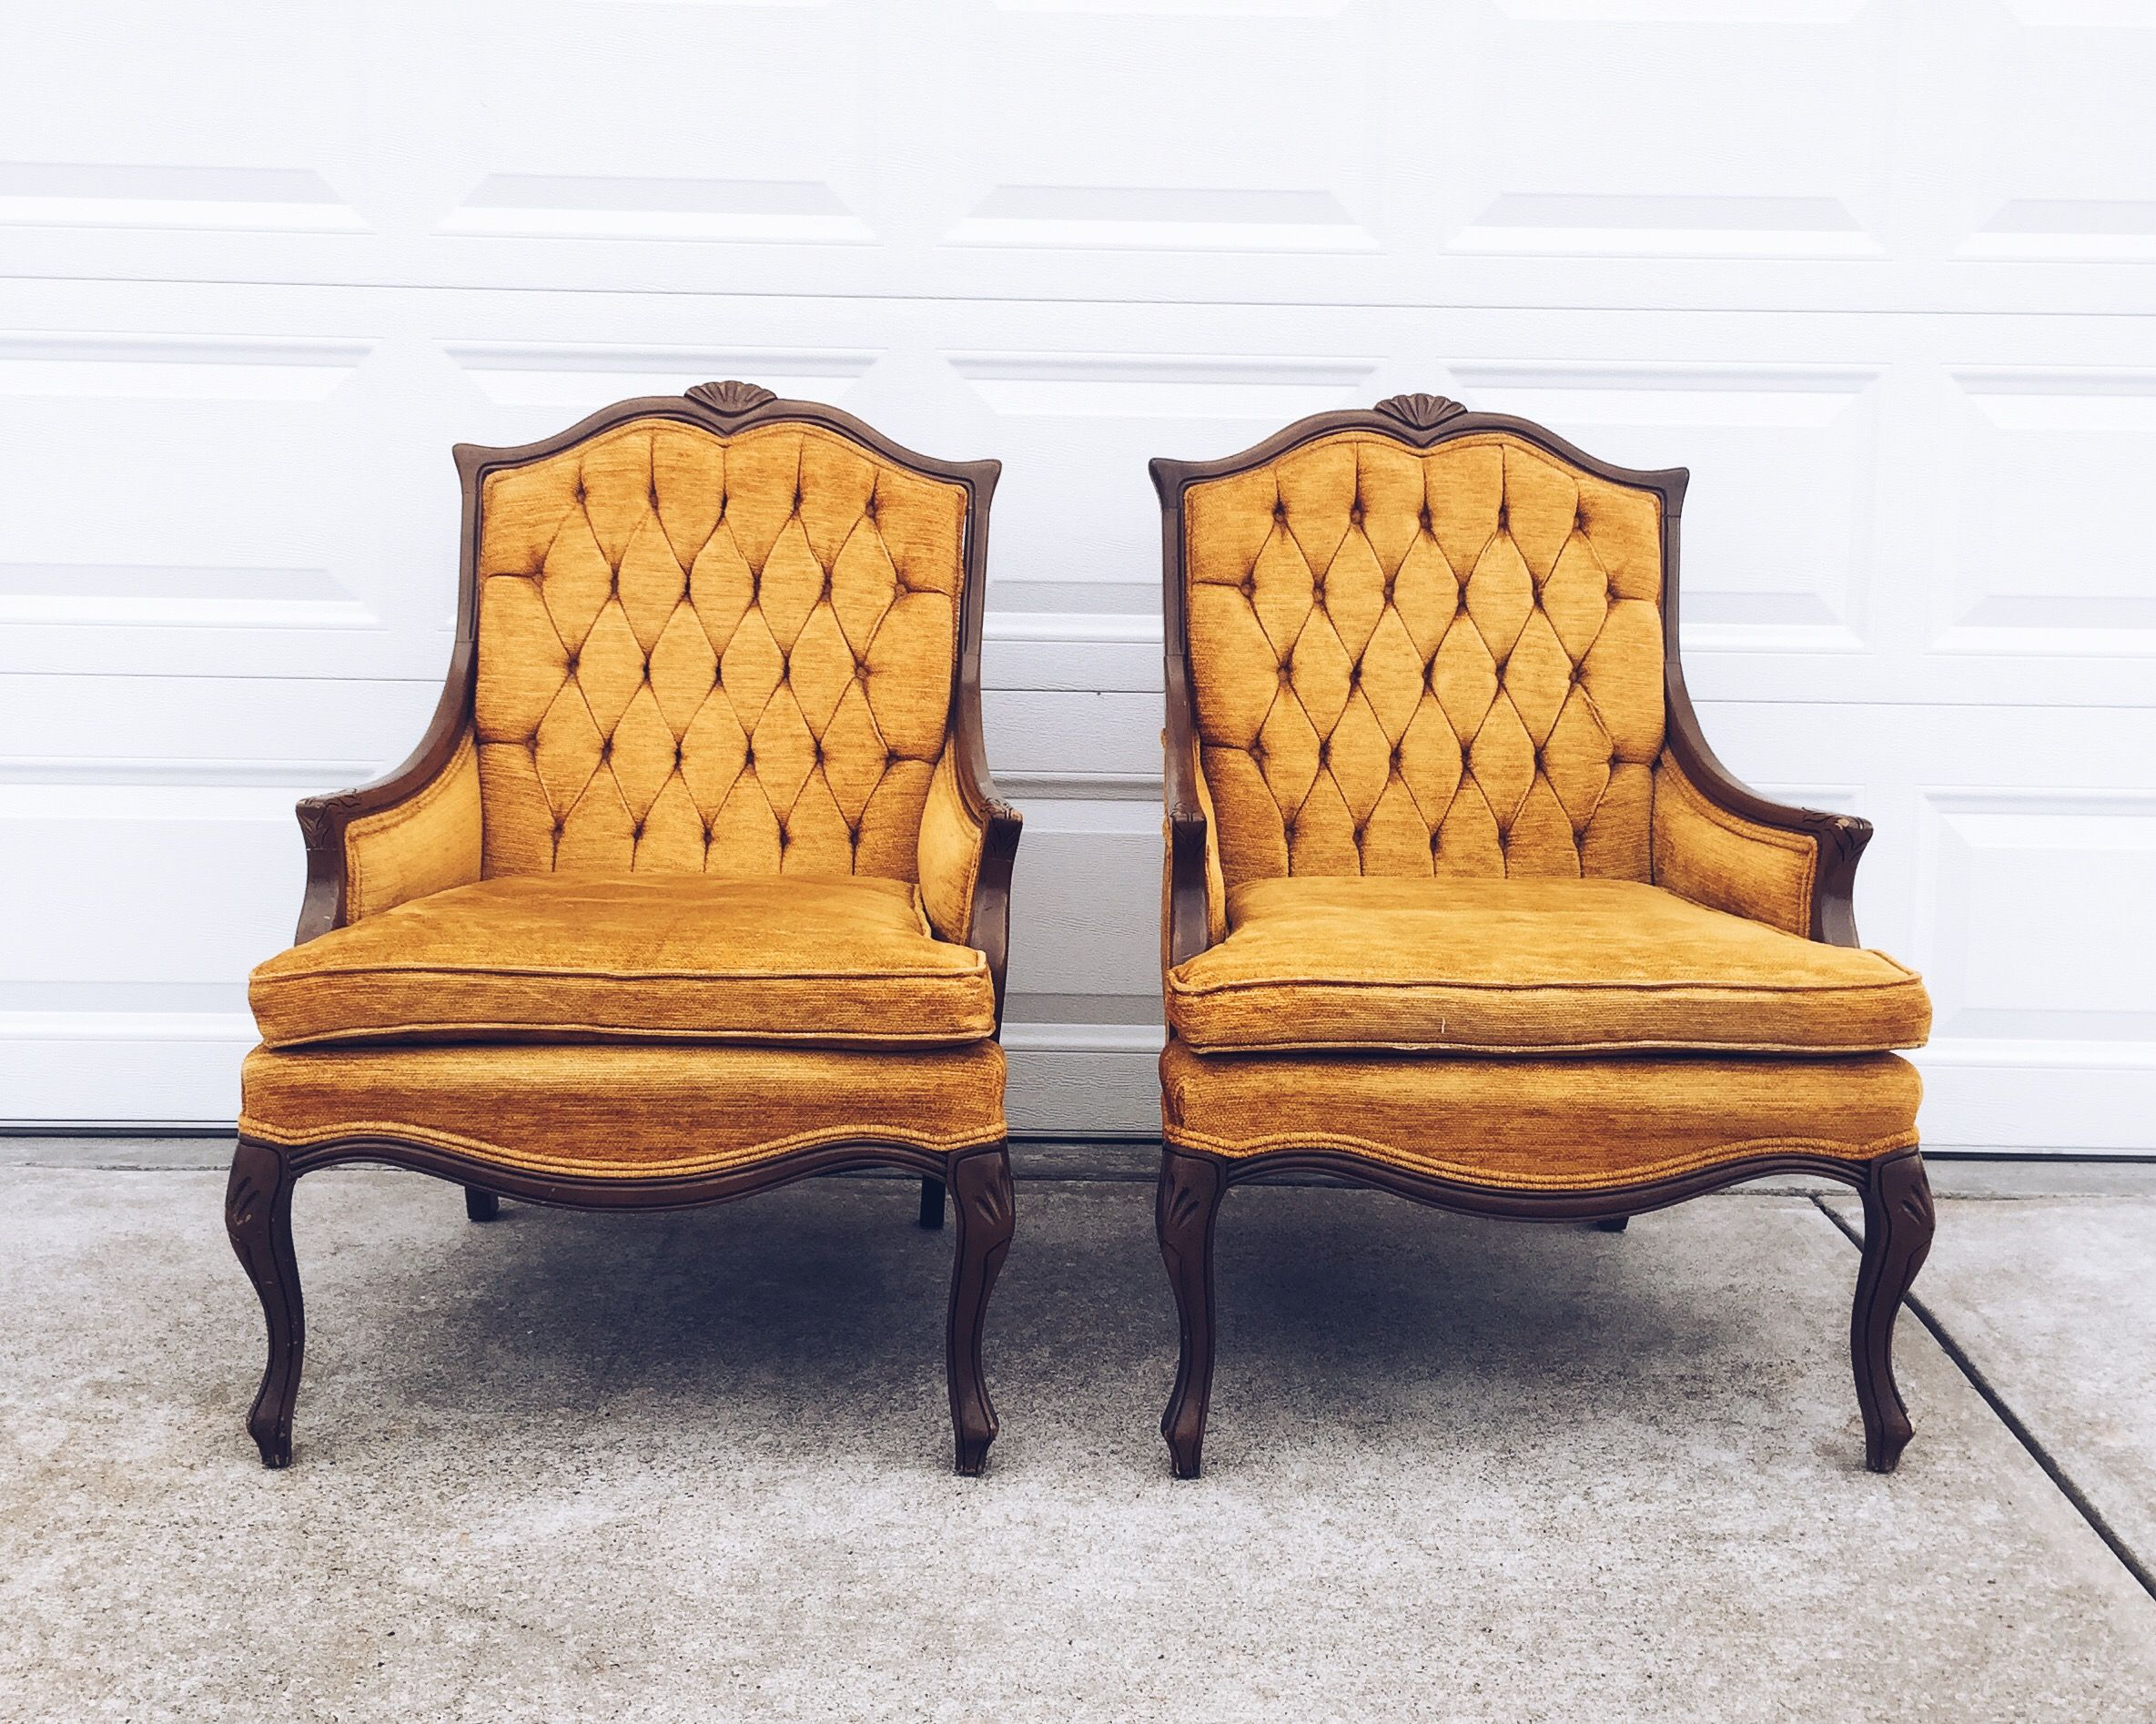 Pair of Statesville Armchairs, Statesville Chair Company, Tufted back, Mustard Accent Chairs, French Bergere Style, Solid Wood